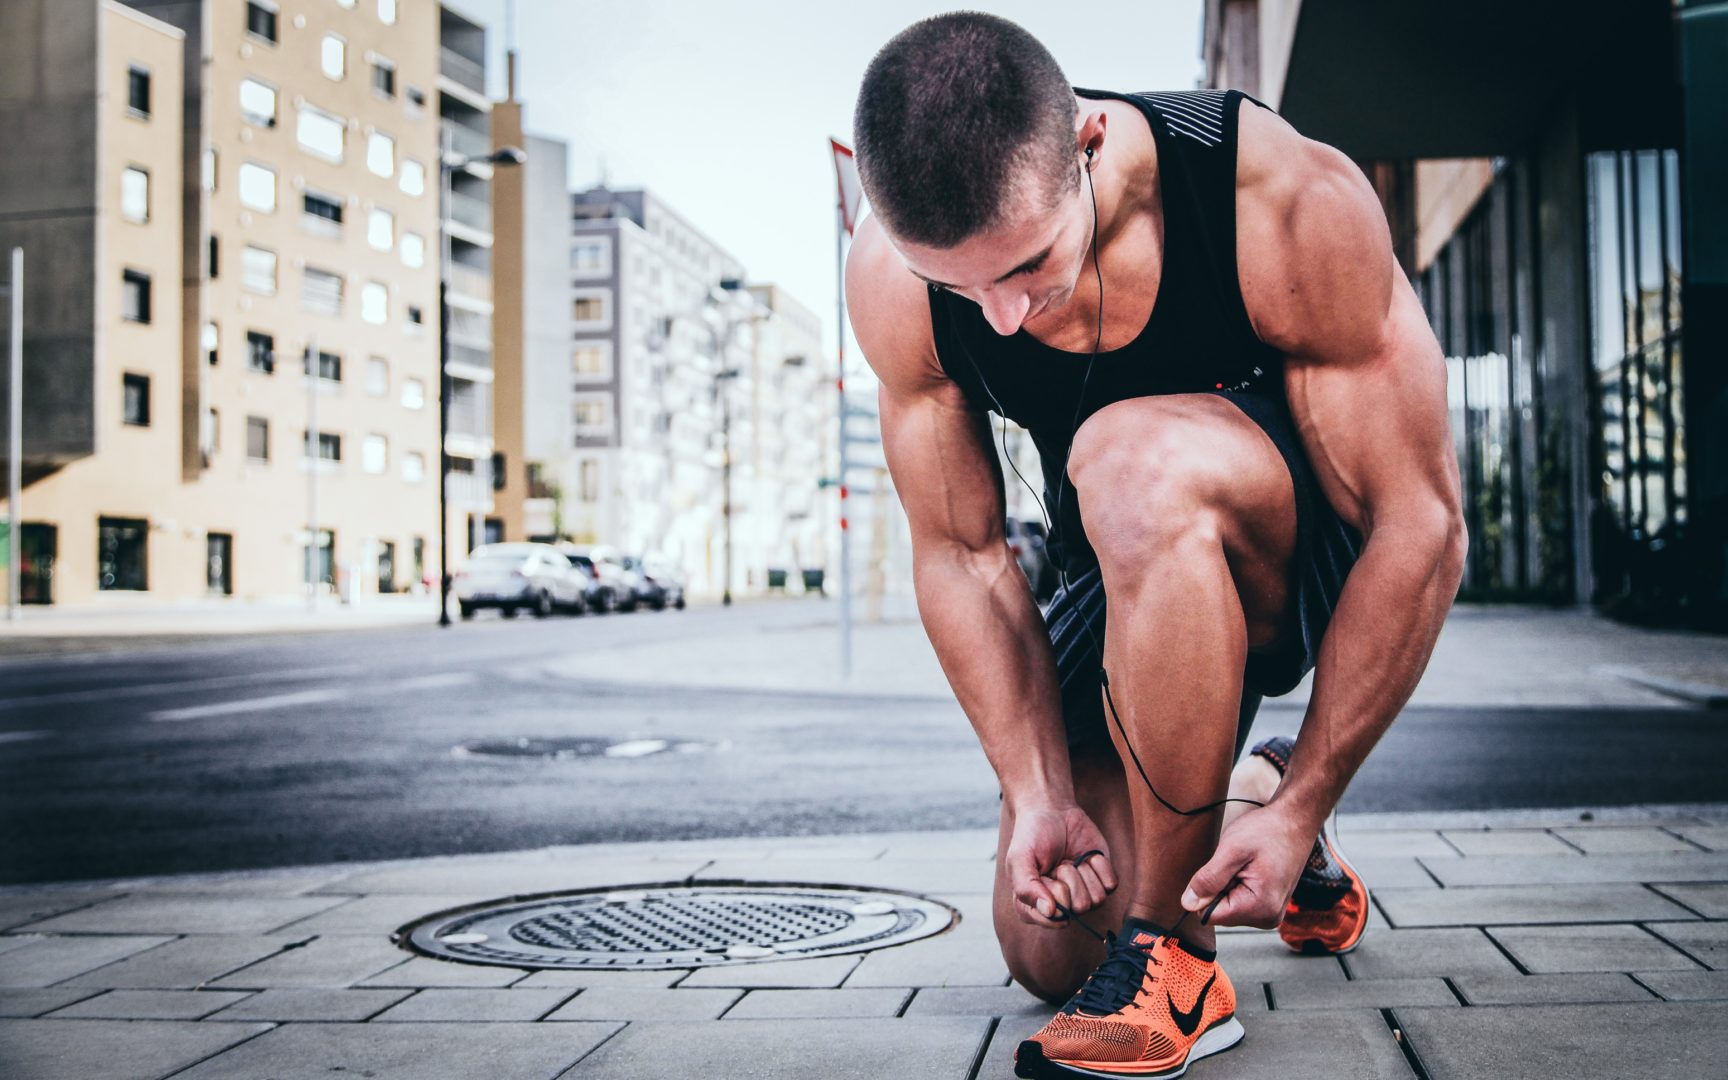 Man in the street tying shoes on way to gym